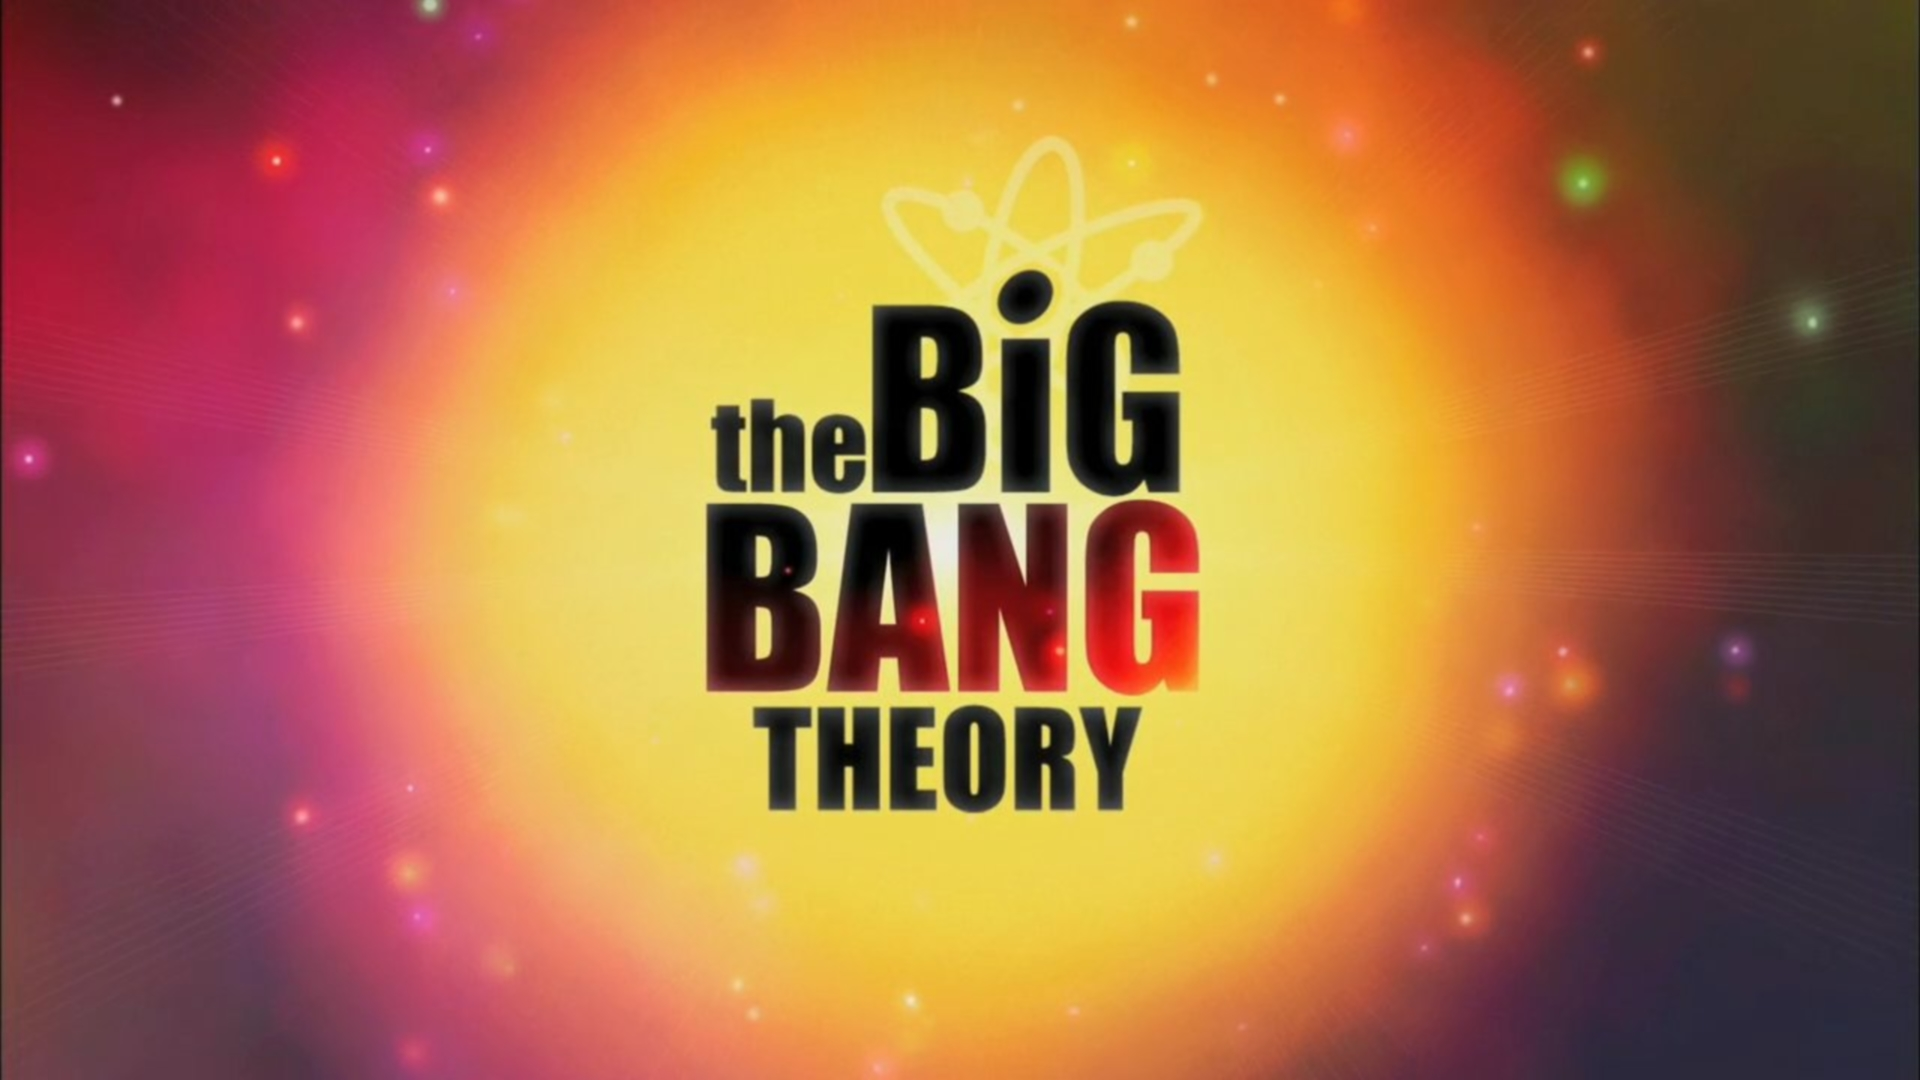 the big bang theory wallpapers, pictures, images